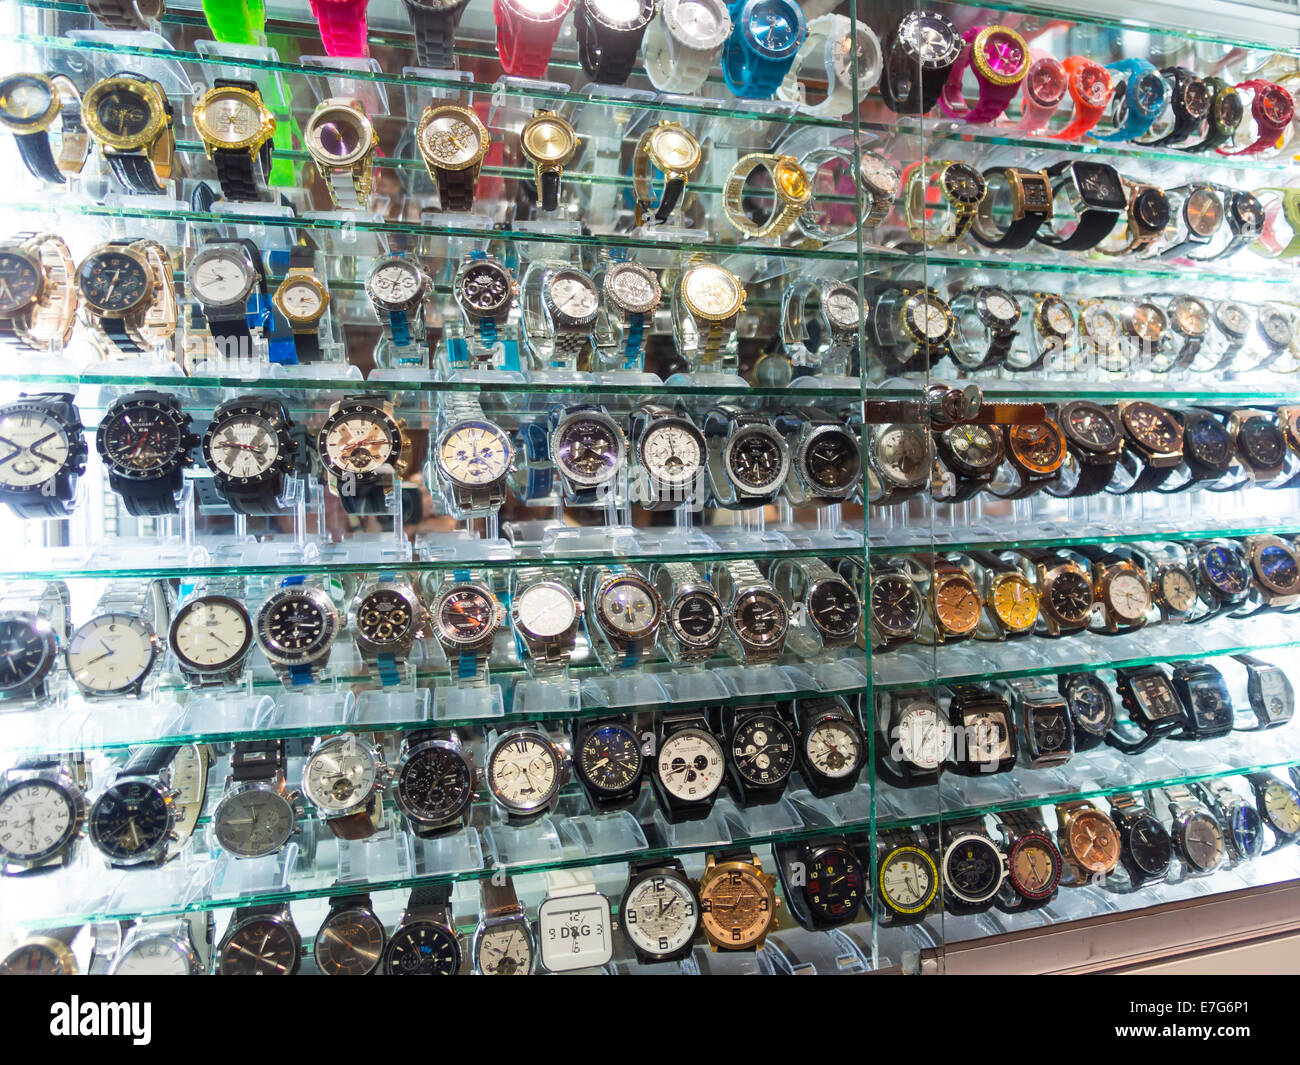 Dsiplay of fake luxury watches, Medina, Marrakech, Marrakech-Tensift-Al Haouz, Morocco - Stock Image